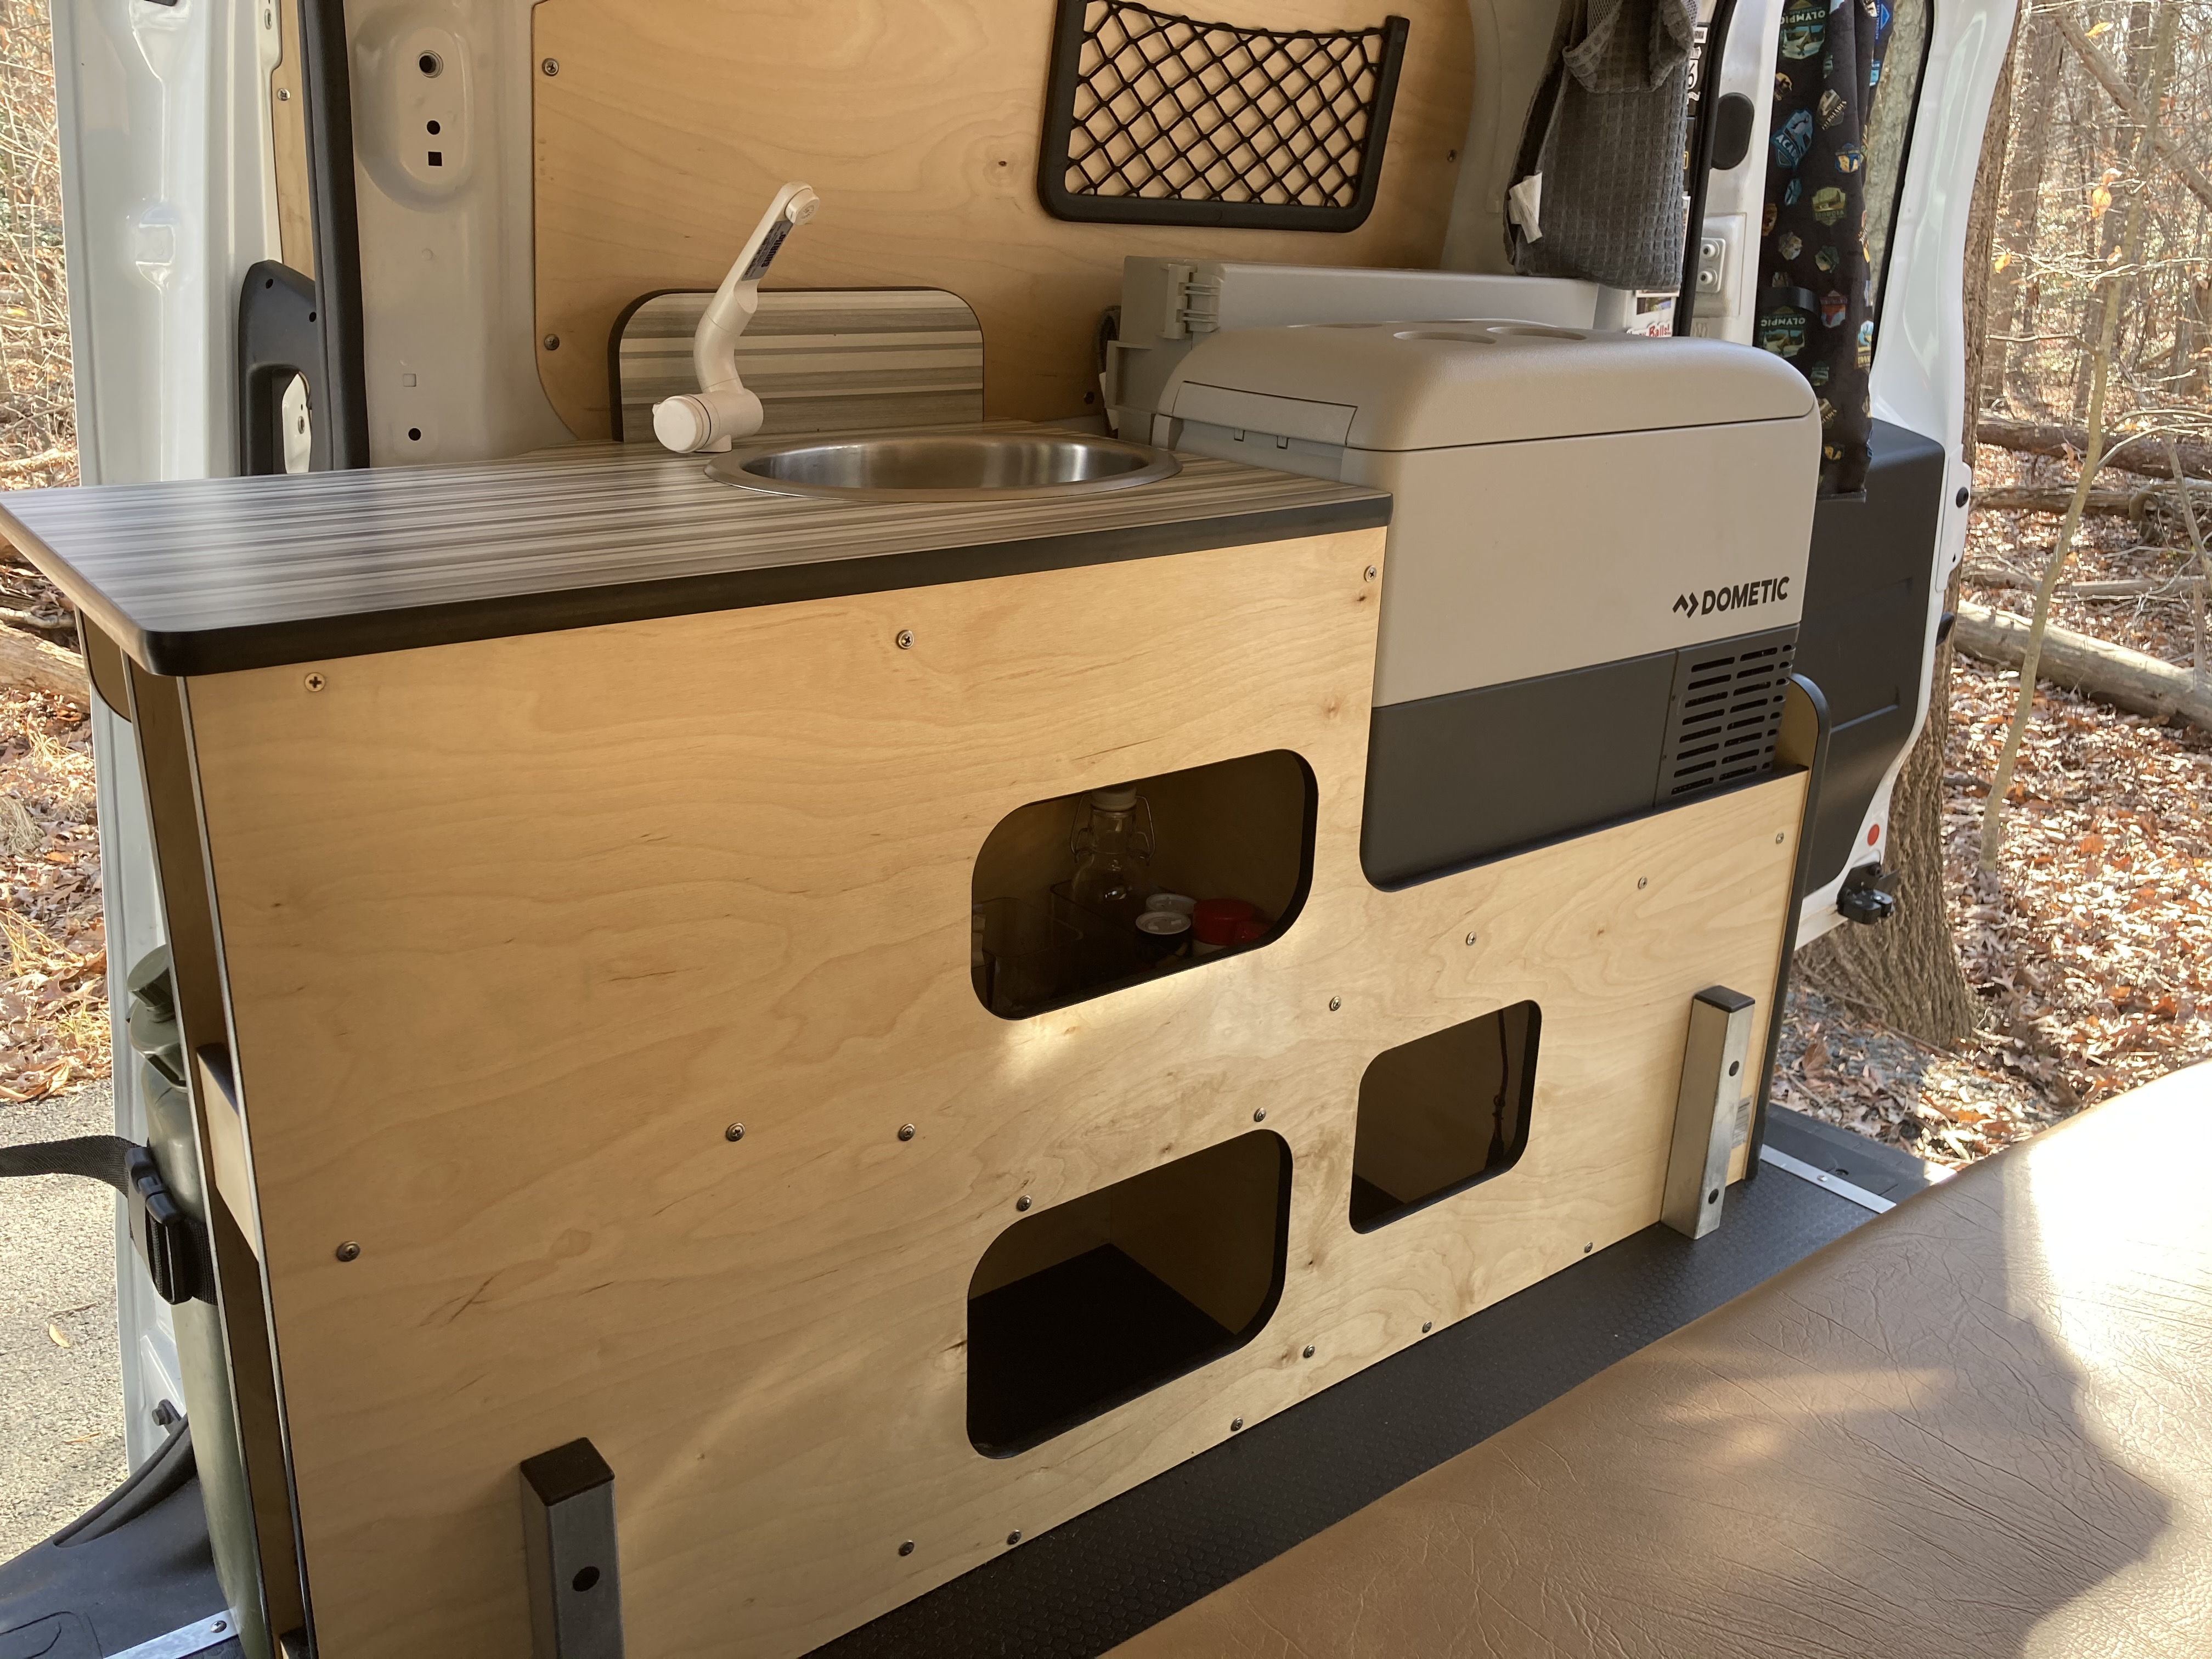 VANpire Weekend will have a fully functional kitchen . RAM ProMaster City 2020